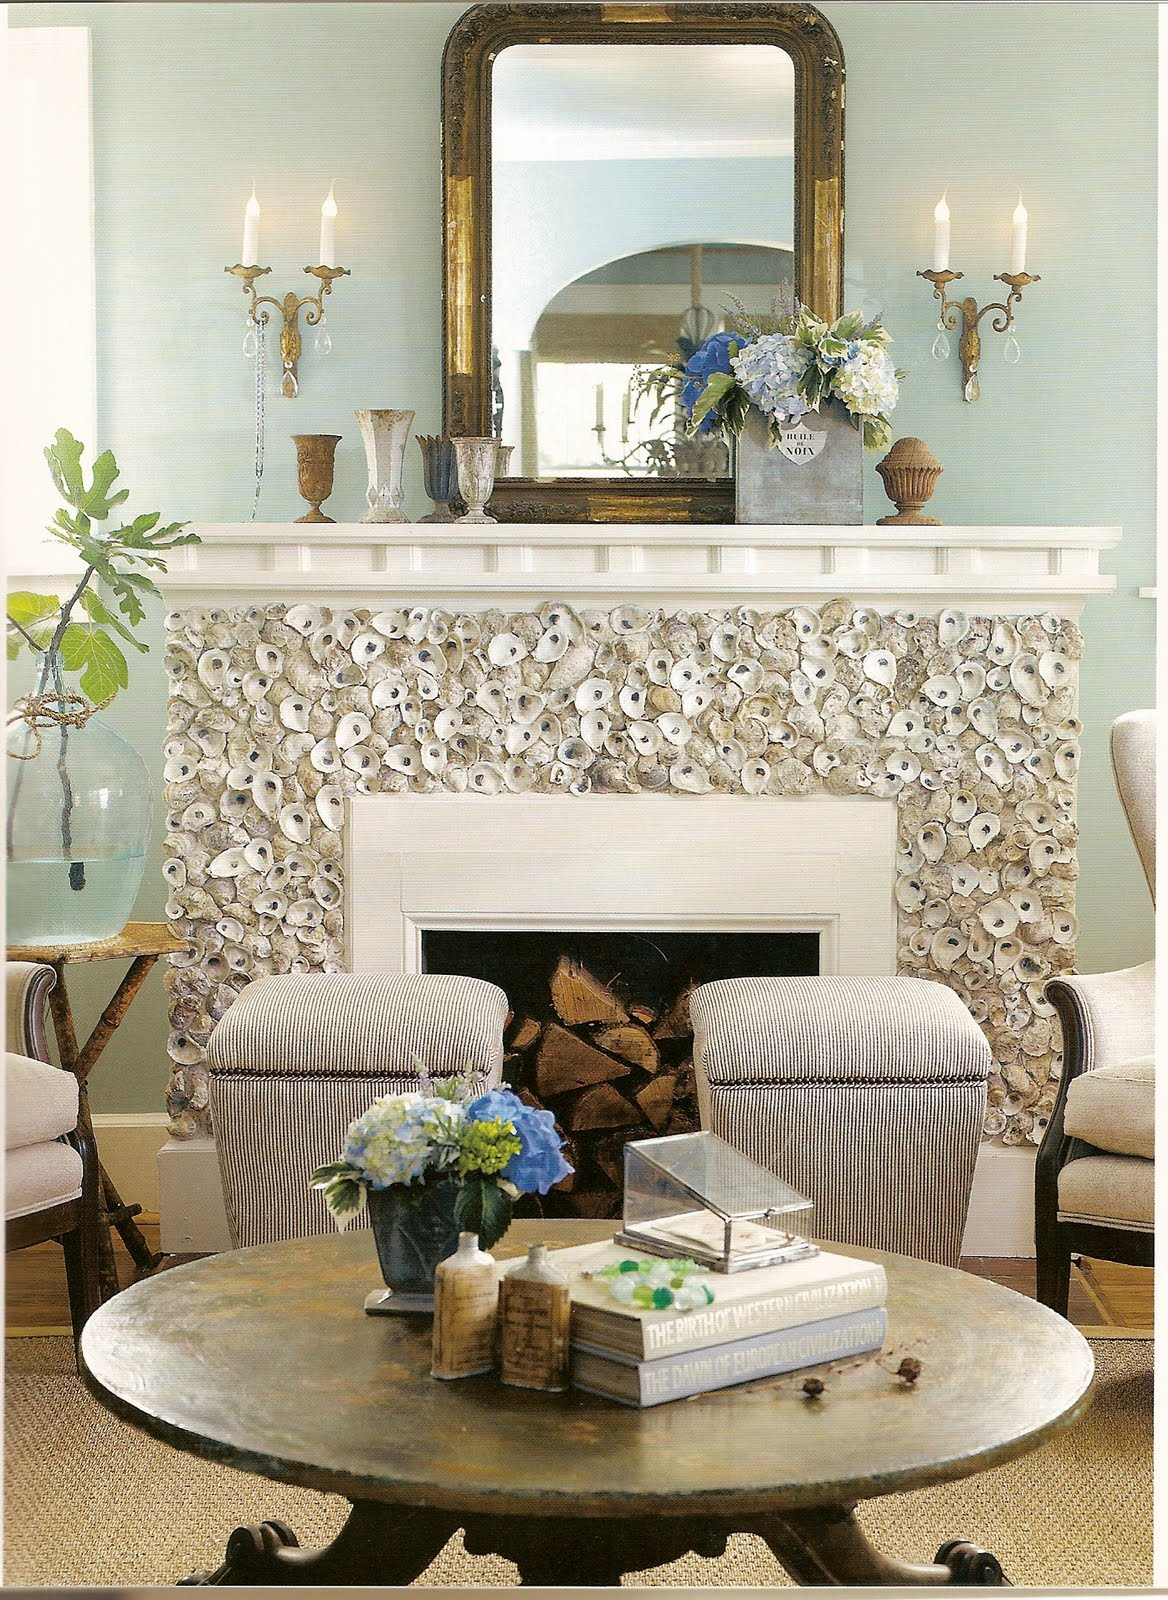 Flair for Vintage Decor: Oyster shells and decor!